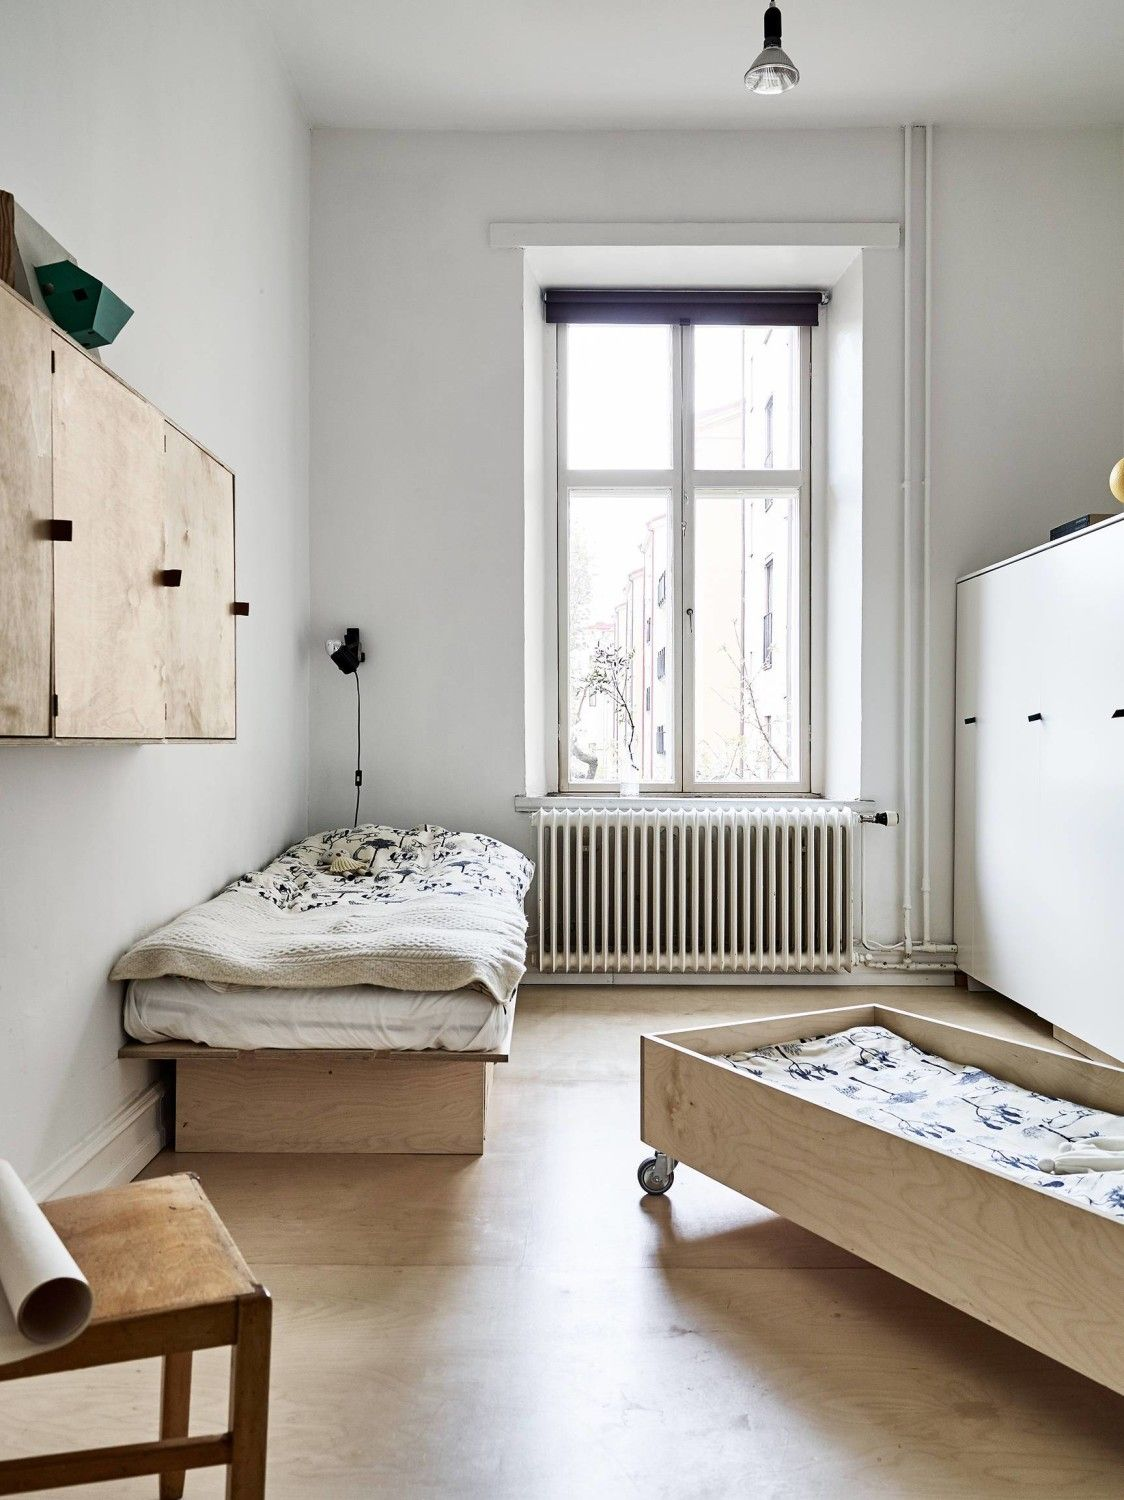 How to create a stunning kids room with plywood: 6 inspiring ideas ...